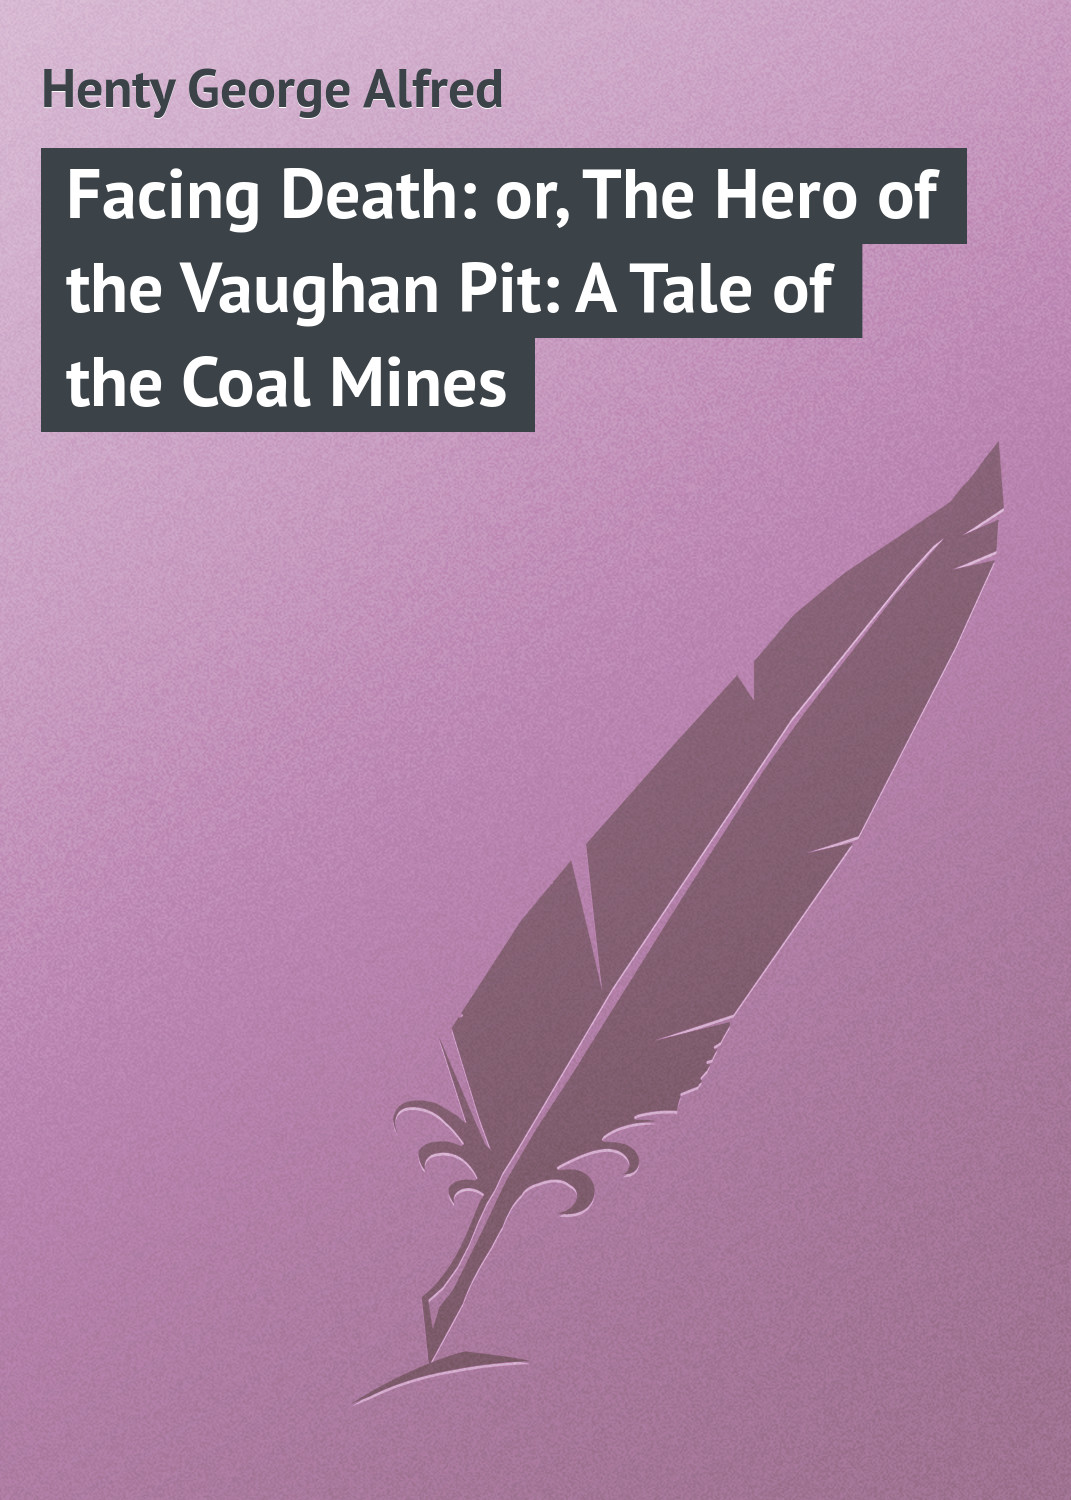 Henty George Alfred Facing Death: or, The Hero of the Vaughan Pit: A Tale of the Coal Mines henty george alfred the curse of carne s hold a tale of adventure